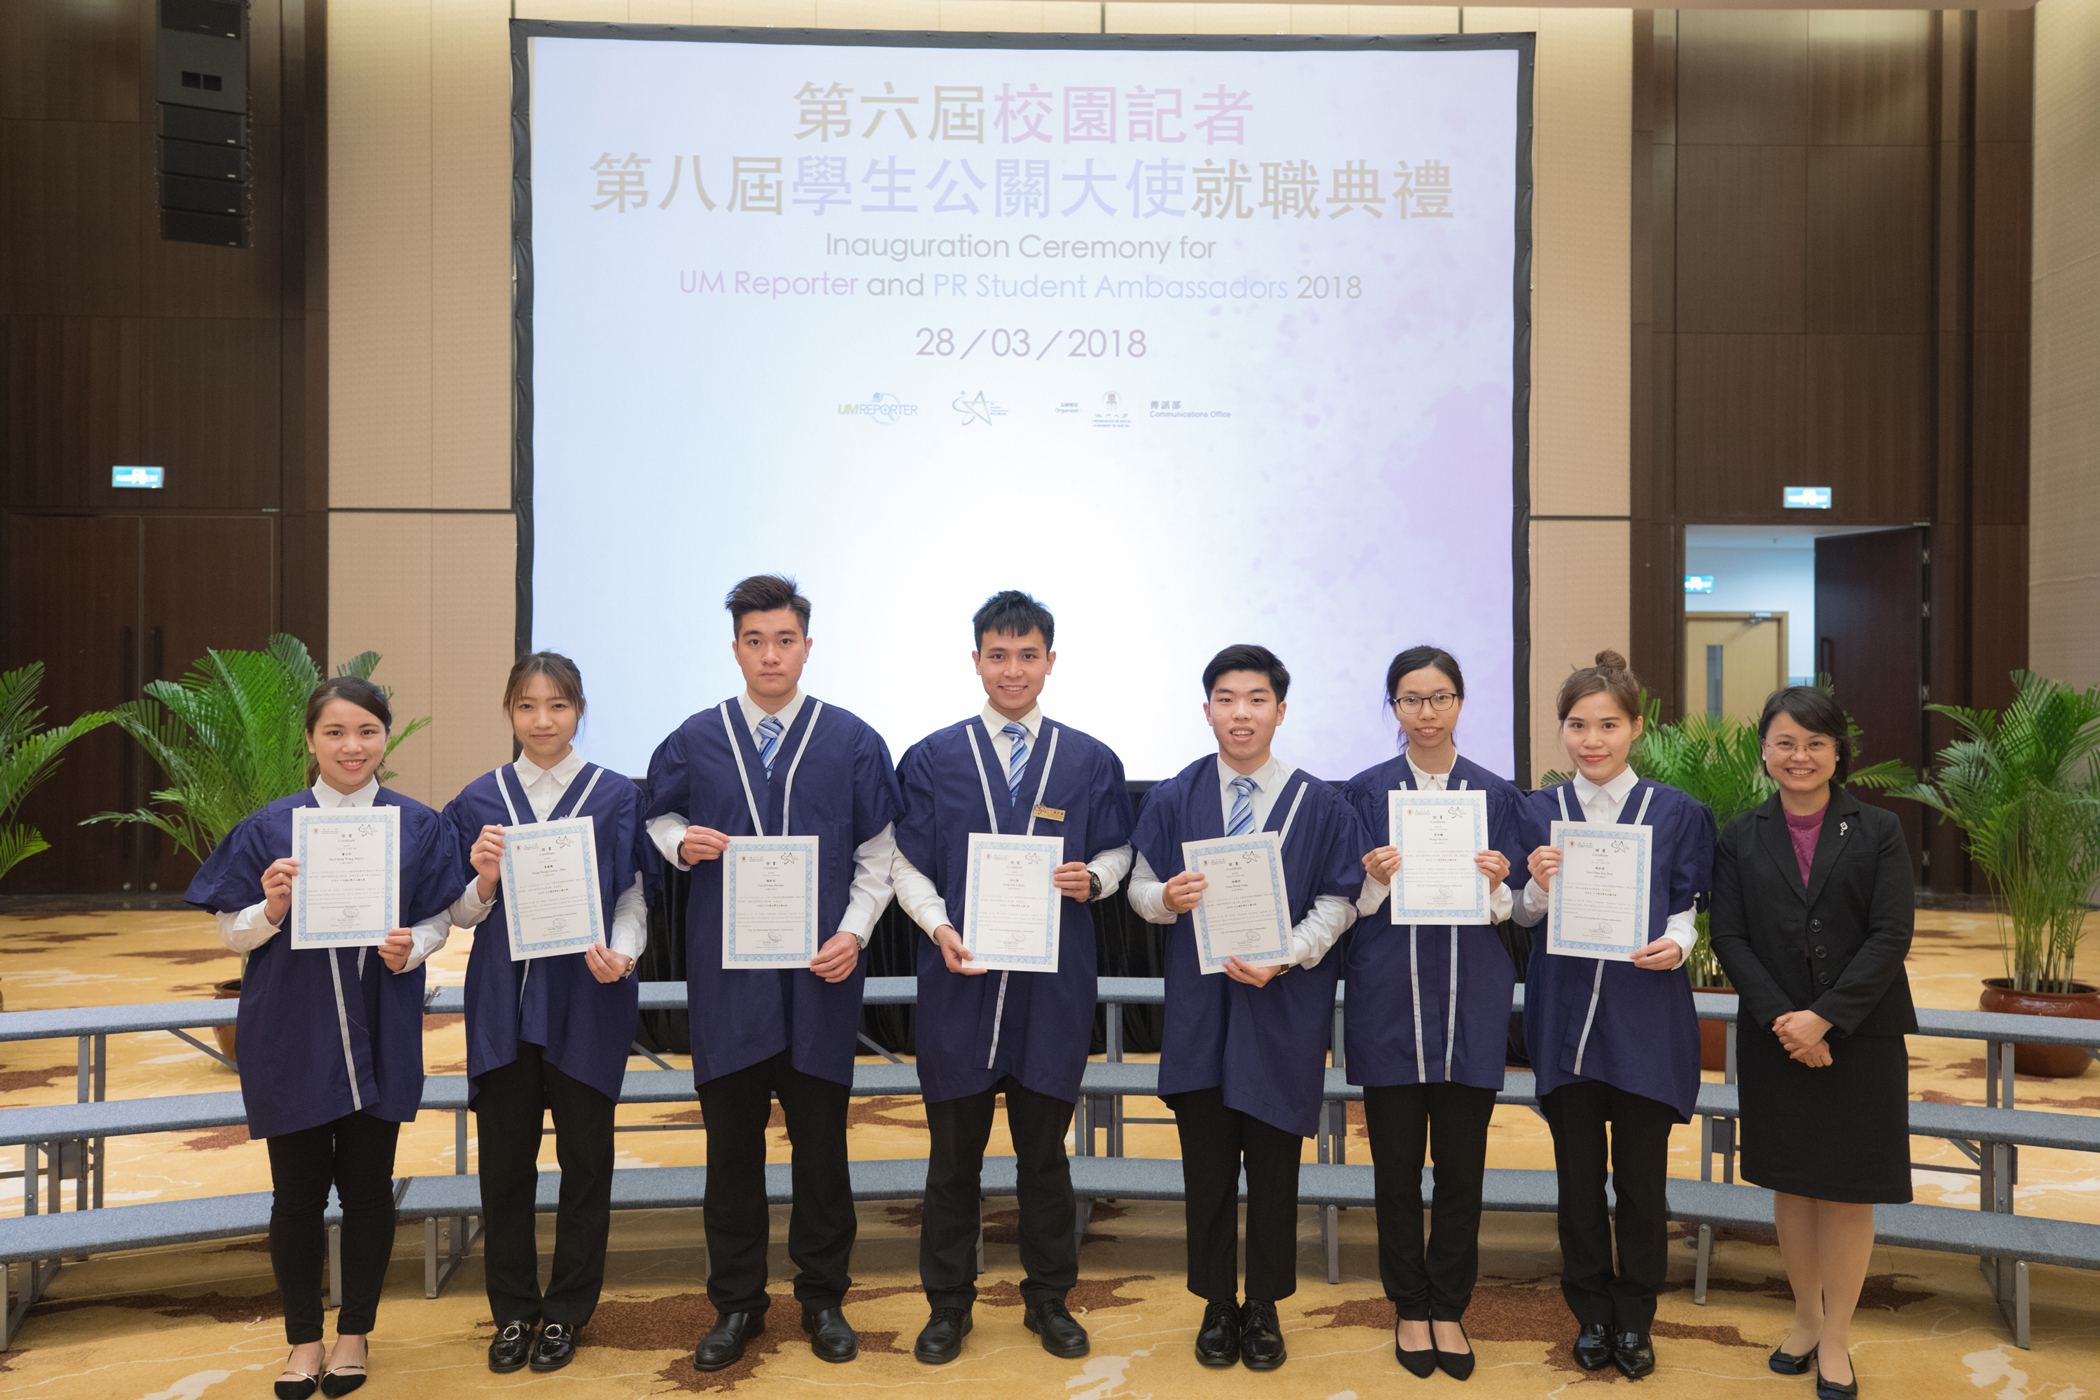 The top ten PR Student Ambassadors with outstanding performance in the past year